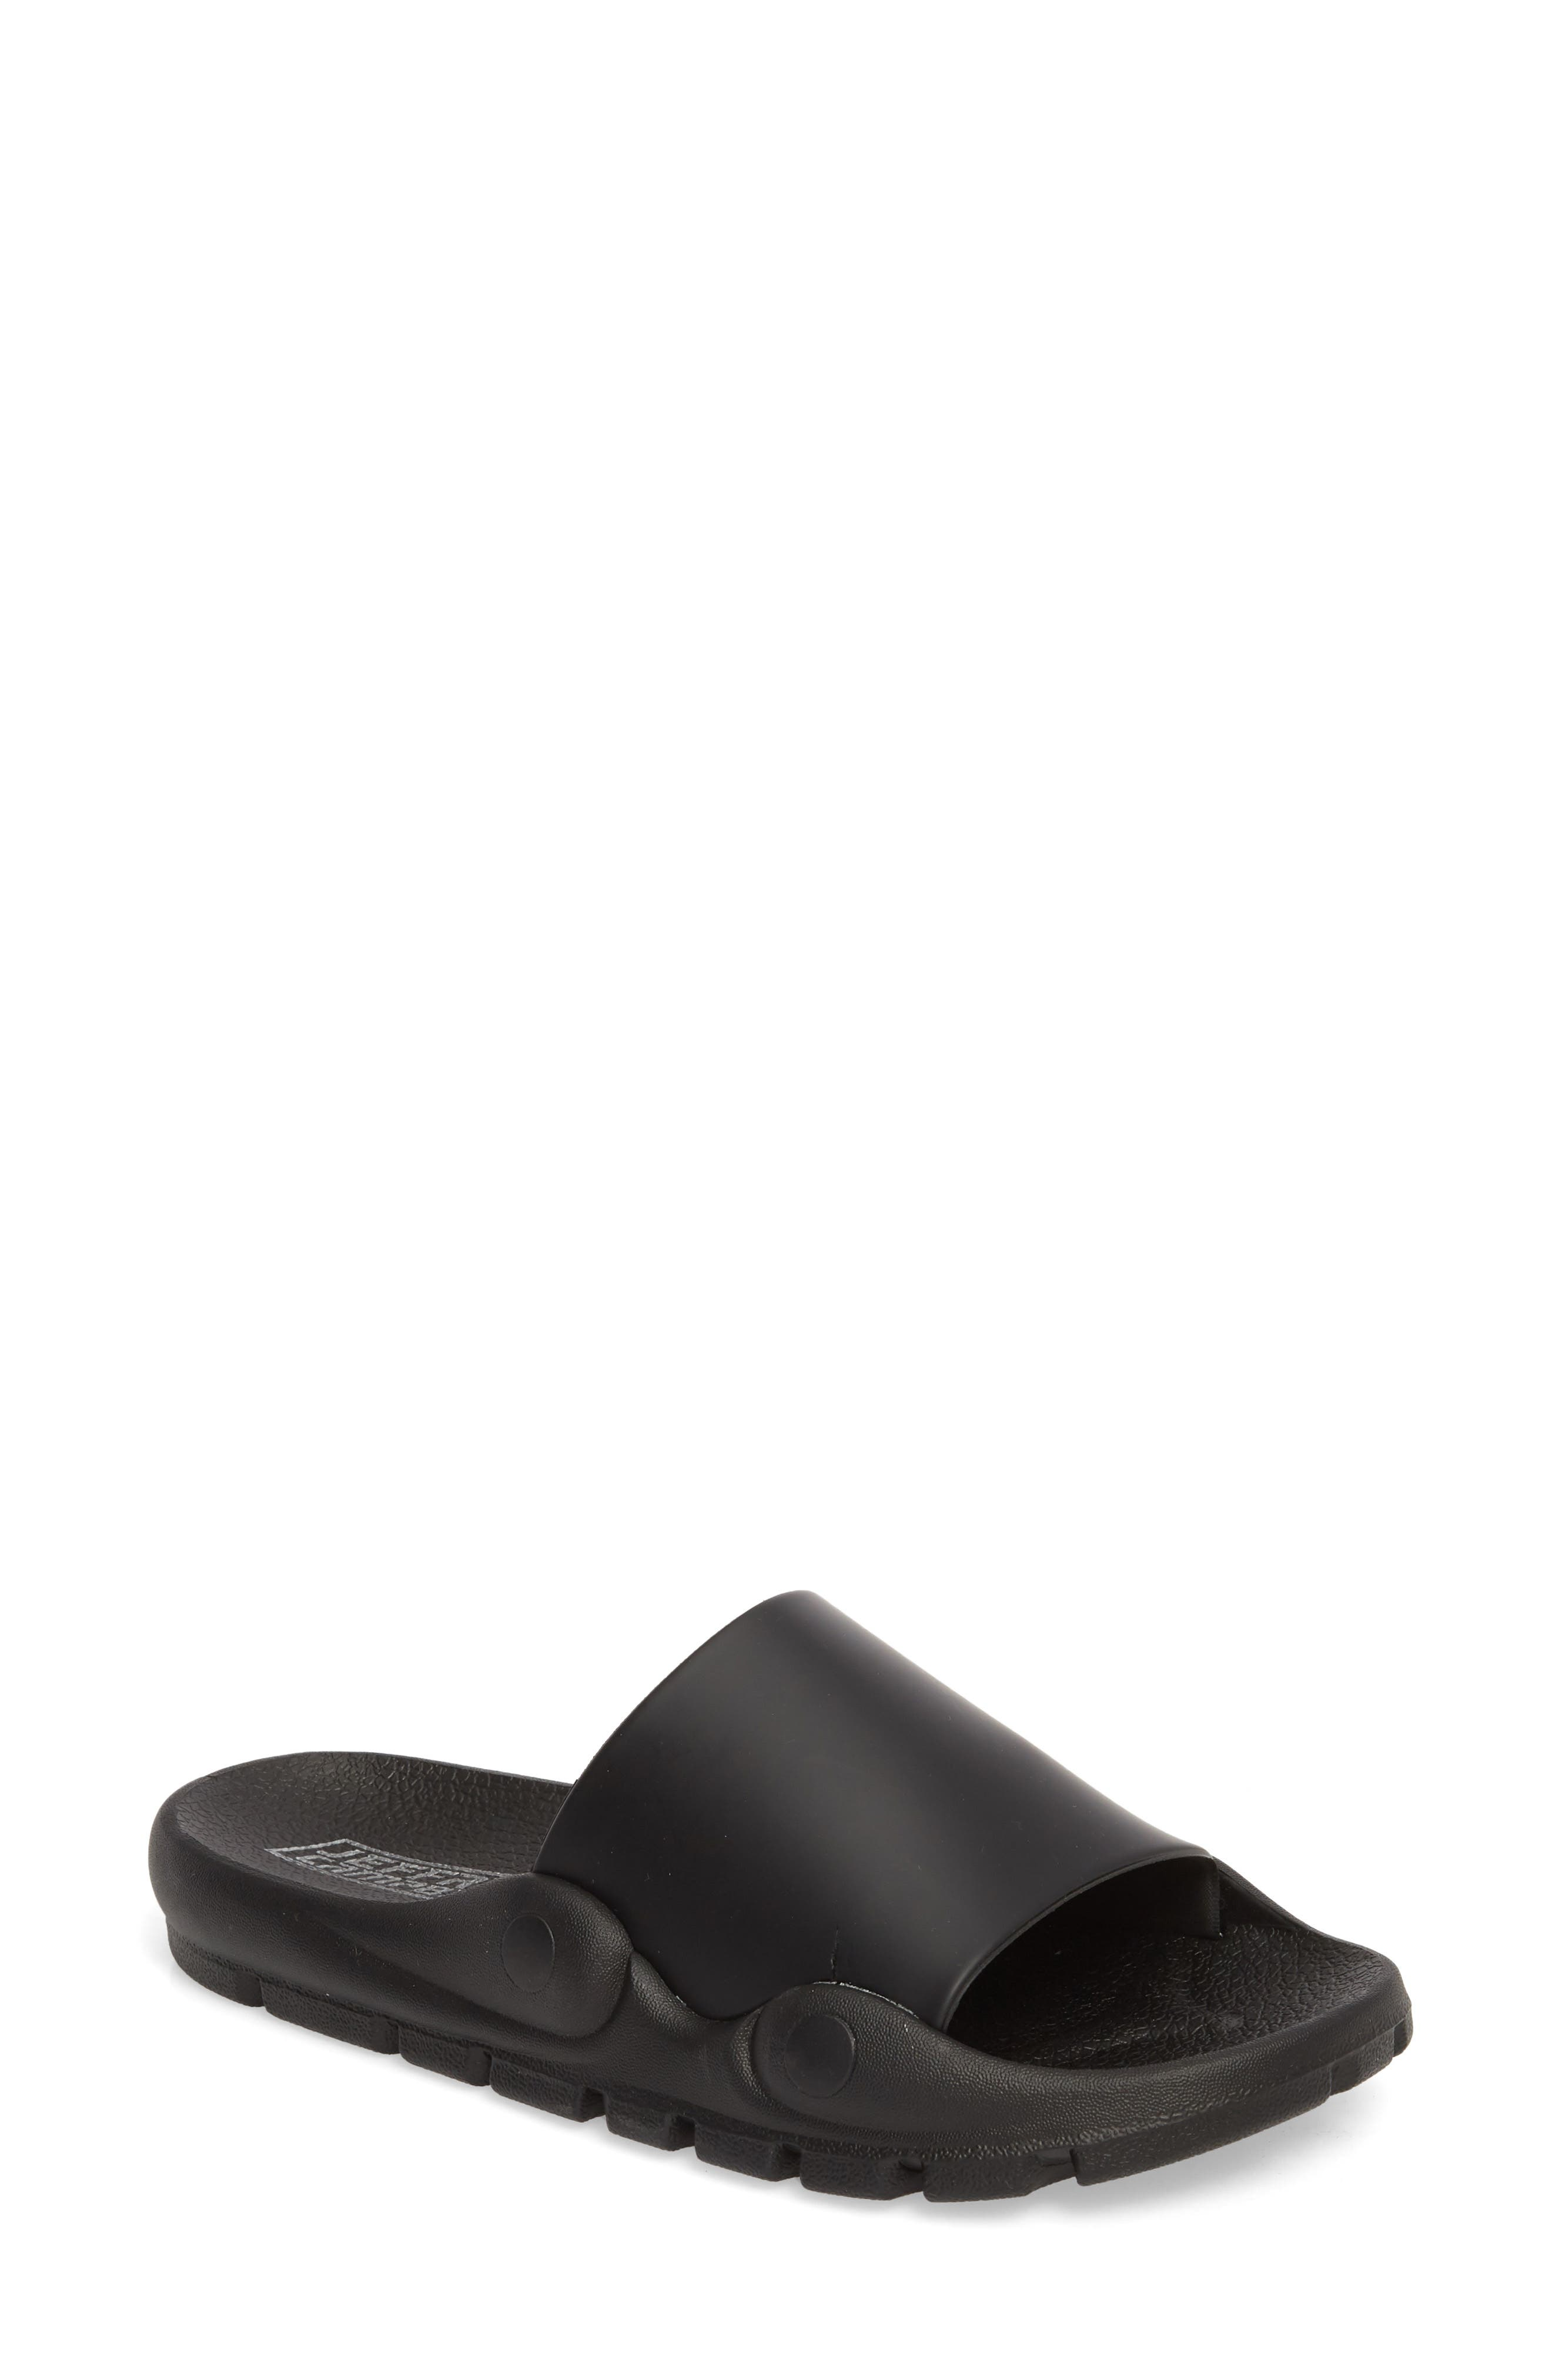 Jeffrey Campbell Aspic Sandal (Women)